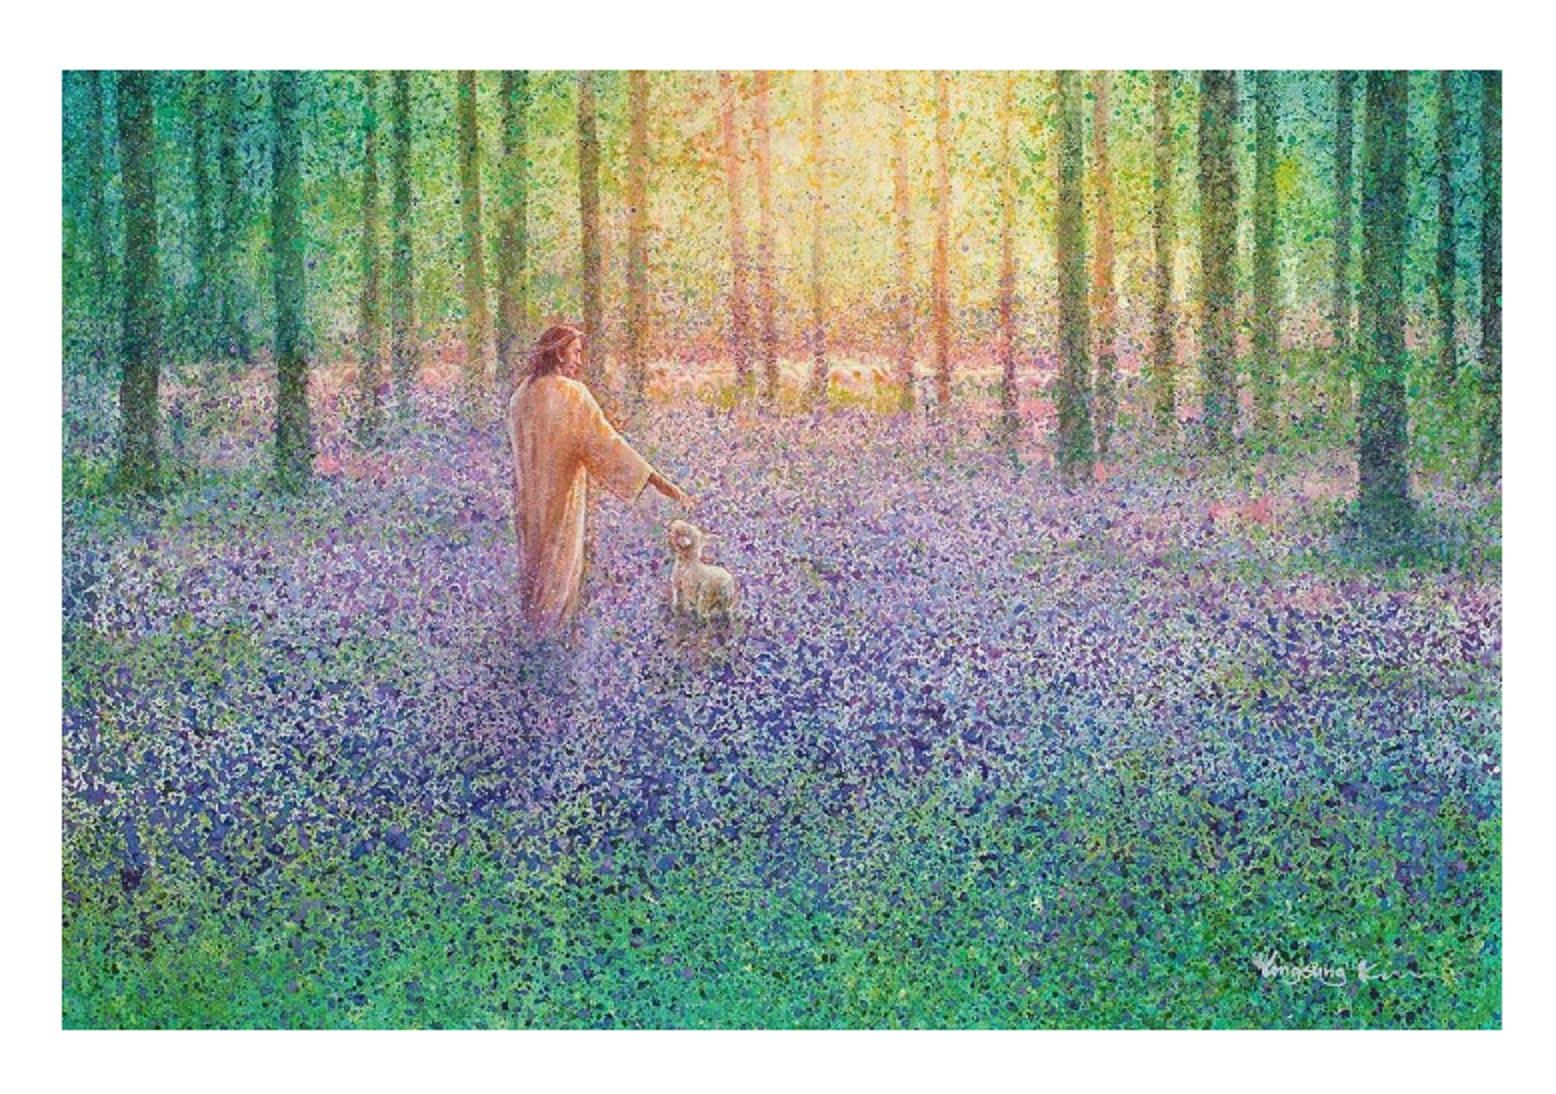 A5 Yongsung Kim WALK WITH ME Canvas Jesus Walking w/Lamb in Wooded Field of Flowers Home Decor Oil Painting On Canvas Wall Art Pictures Js19